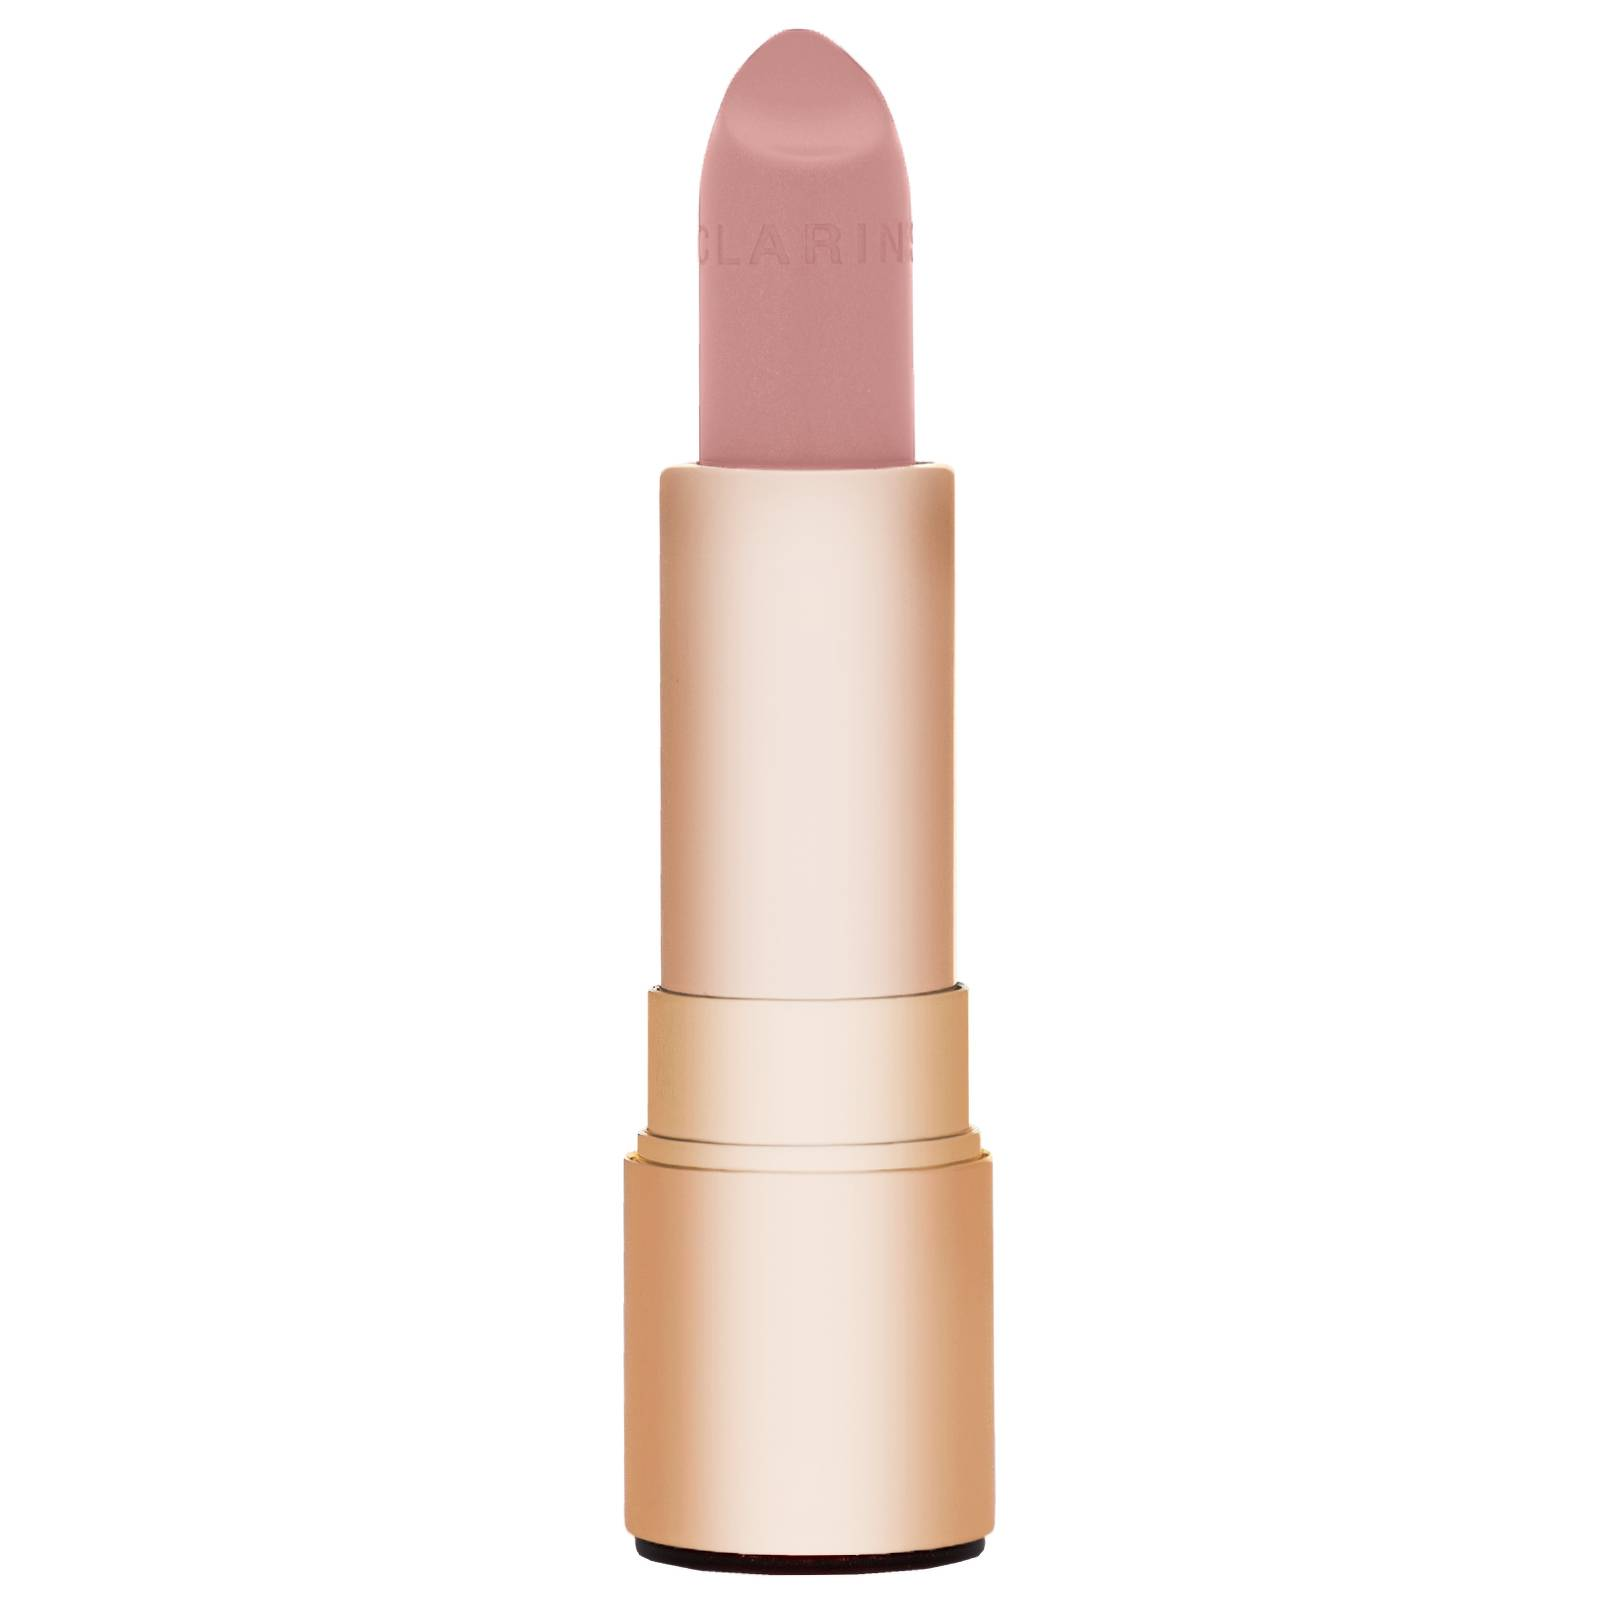 Clarins Joli Rouge Lipstick 751 Tea Rose 3,5 g / 0.1 oz.